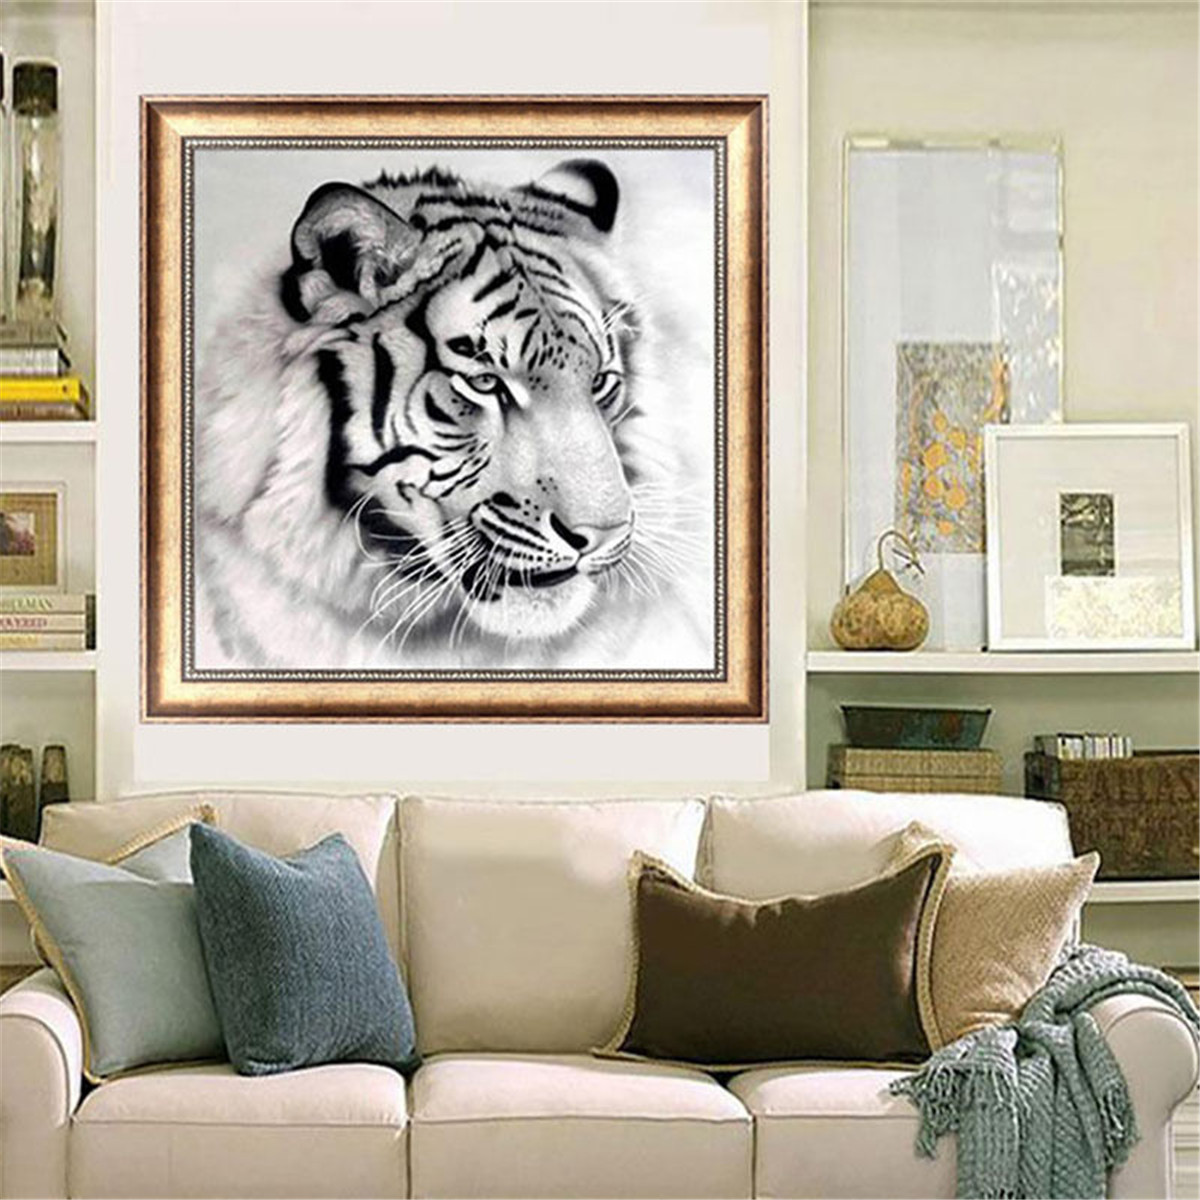 Ebluejay 12x12 inches black and white tiger 5d diamond for Home decor 5d